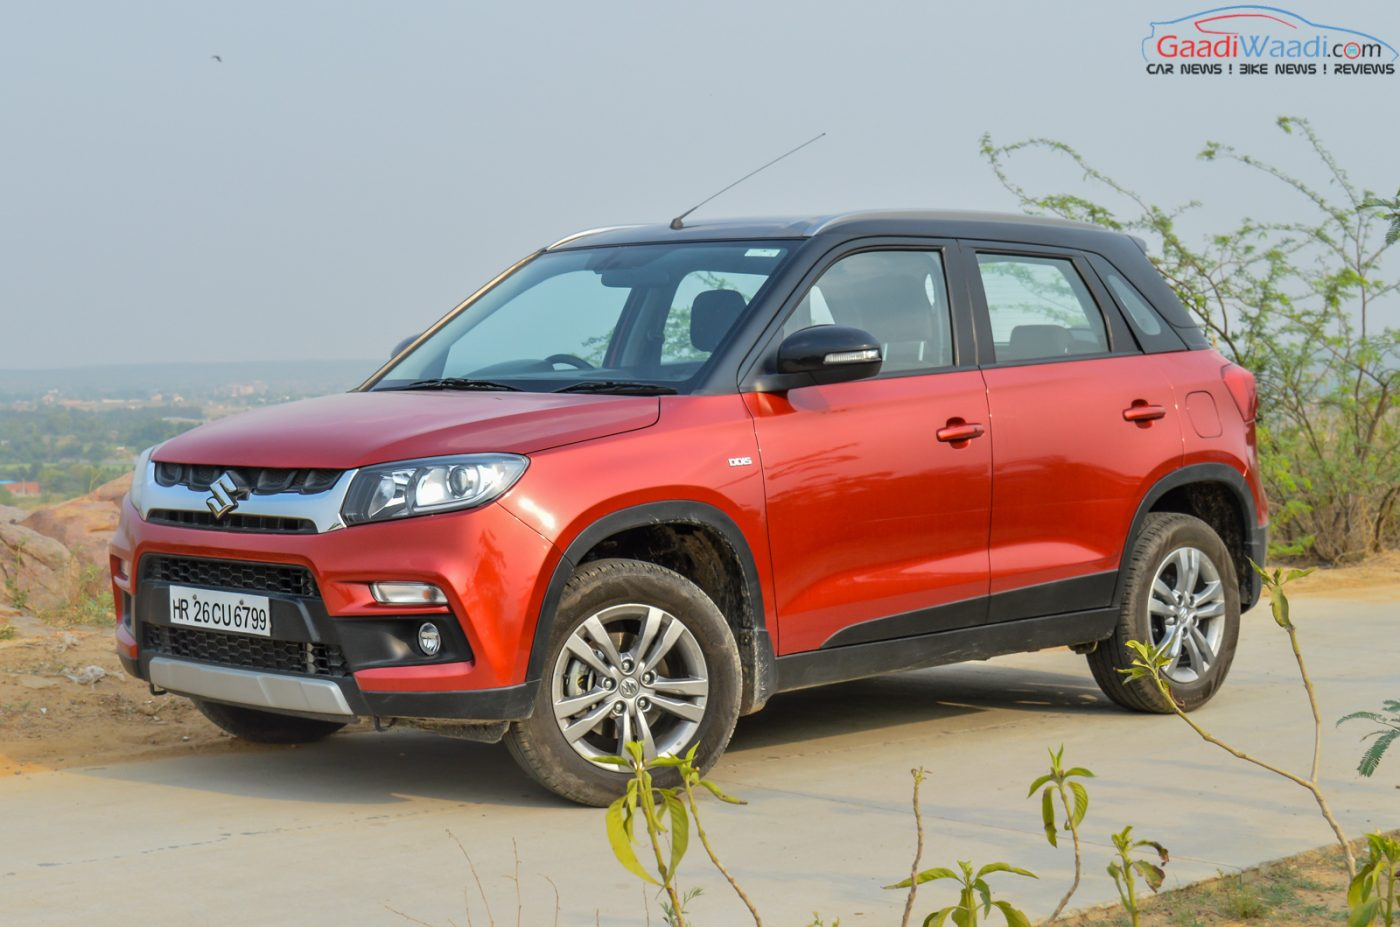 India Made Maruti Suzuki Vitara Brezza Could Export To Indonesia